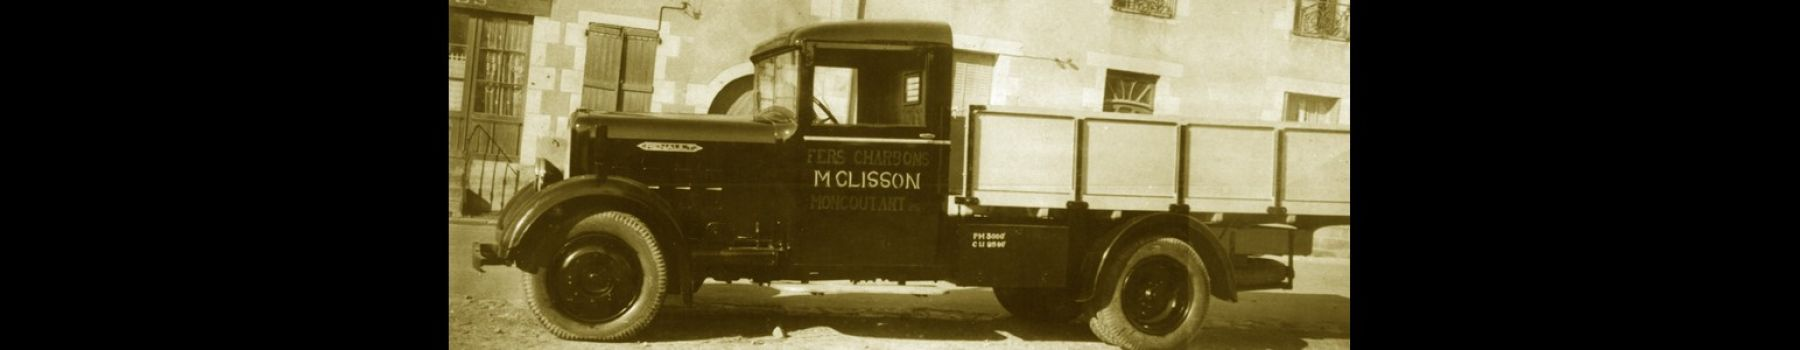 camion clisson1